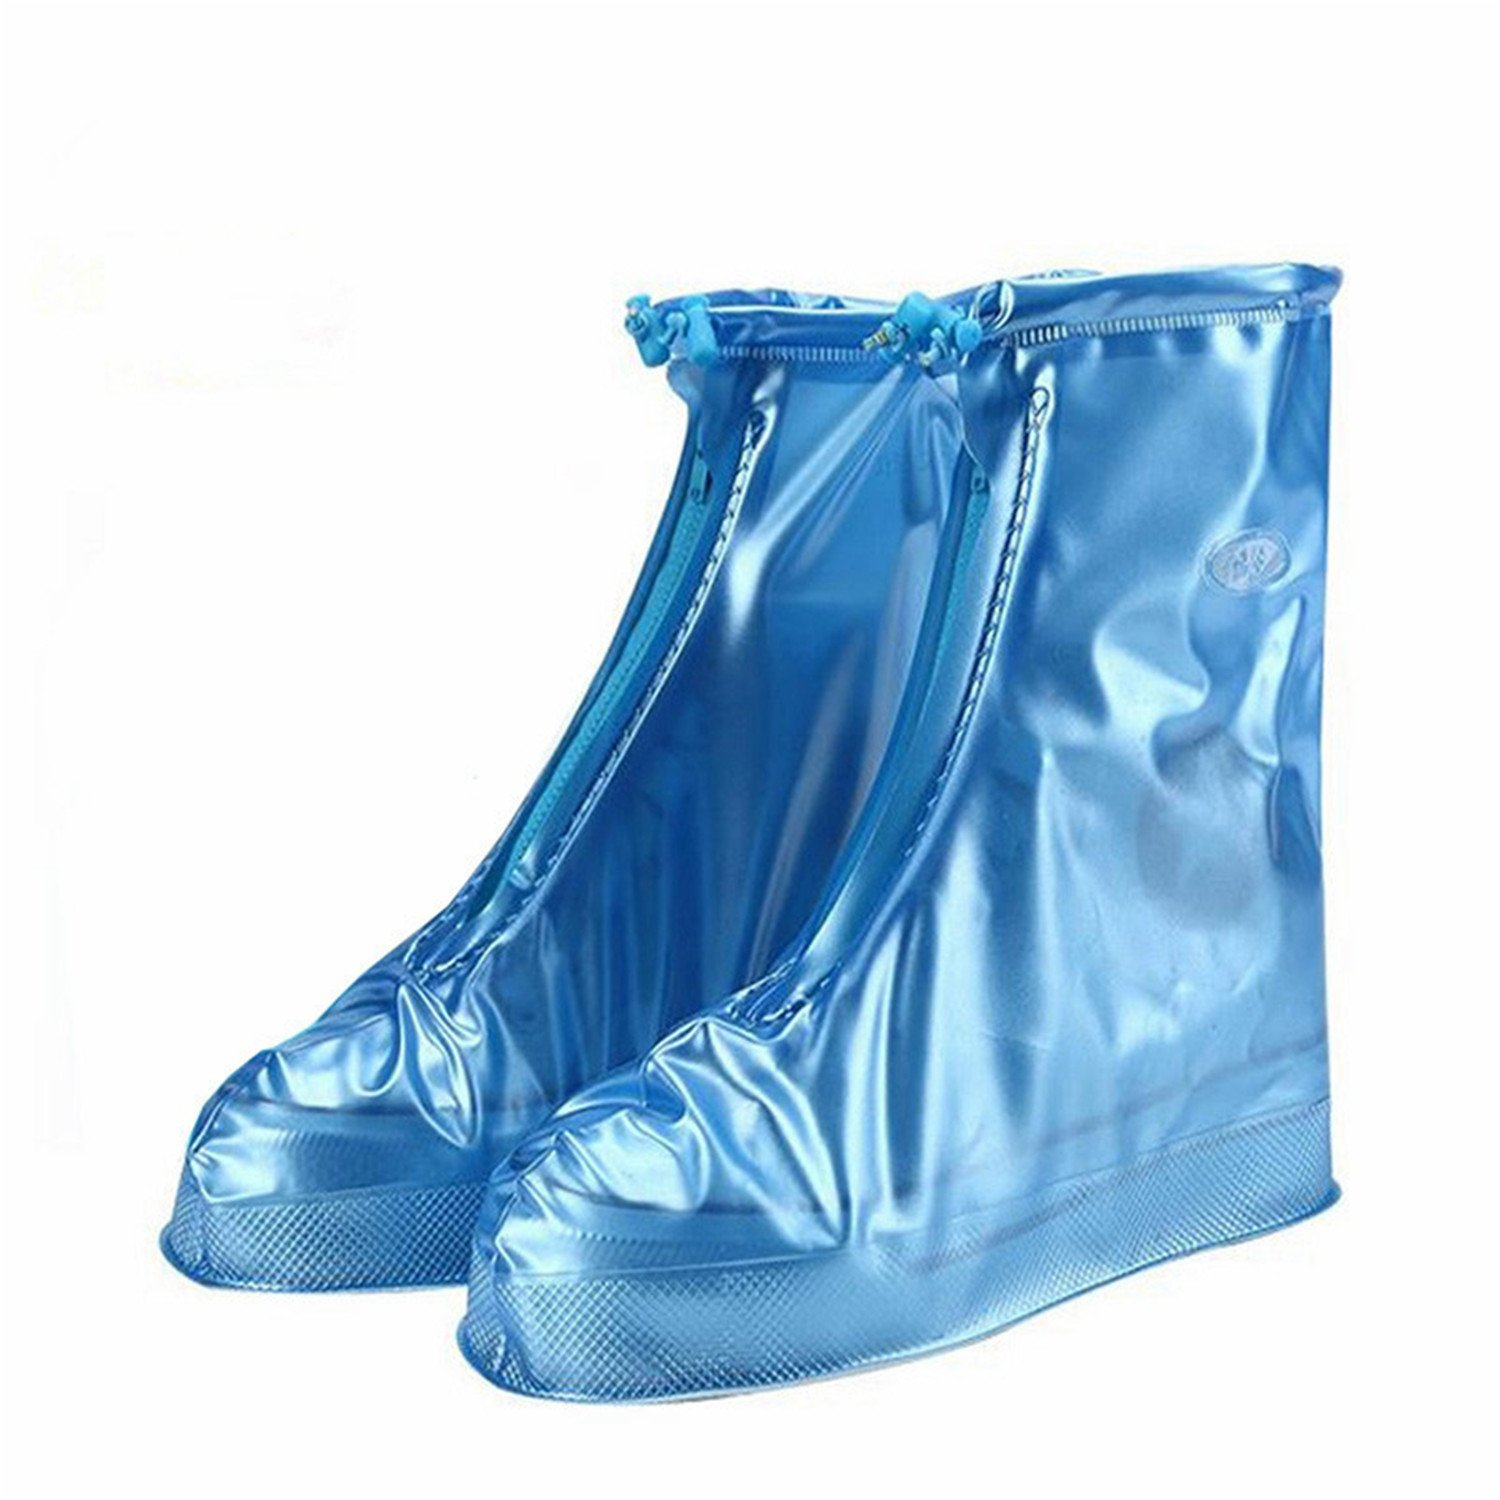 Amazon.com | Luise Hoger Waterproof Overshoes Shoe Covers Shoe Protector Men&WomenS&Children Rain Cover For Shoes Shoes Accessories | Rain Footwear